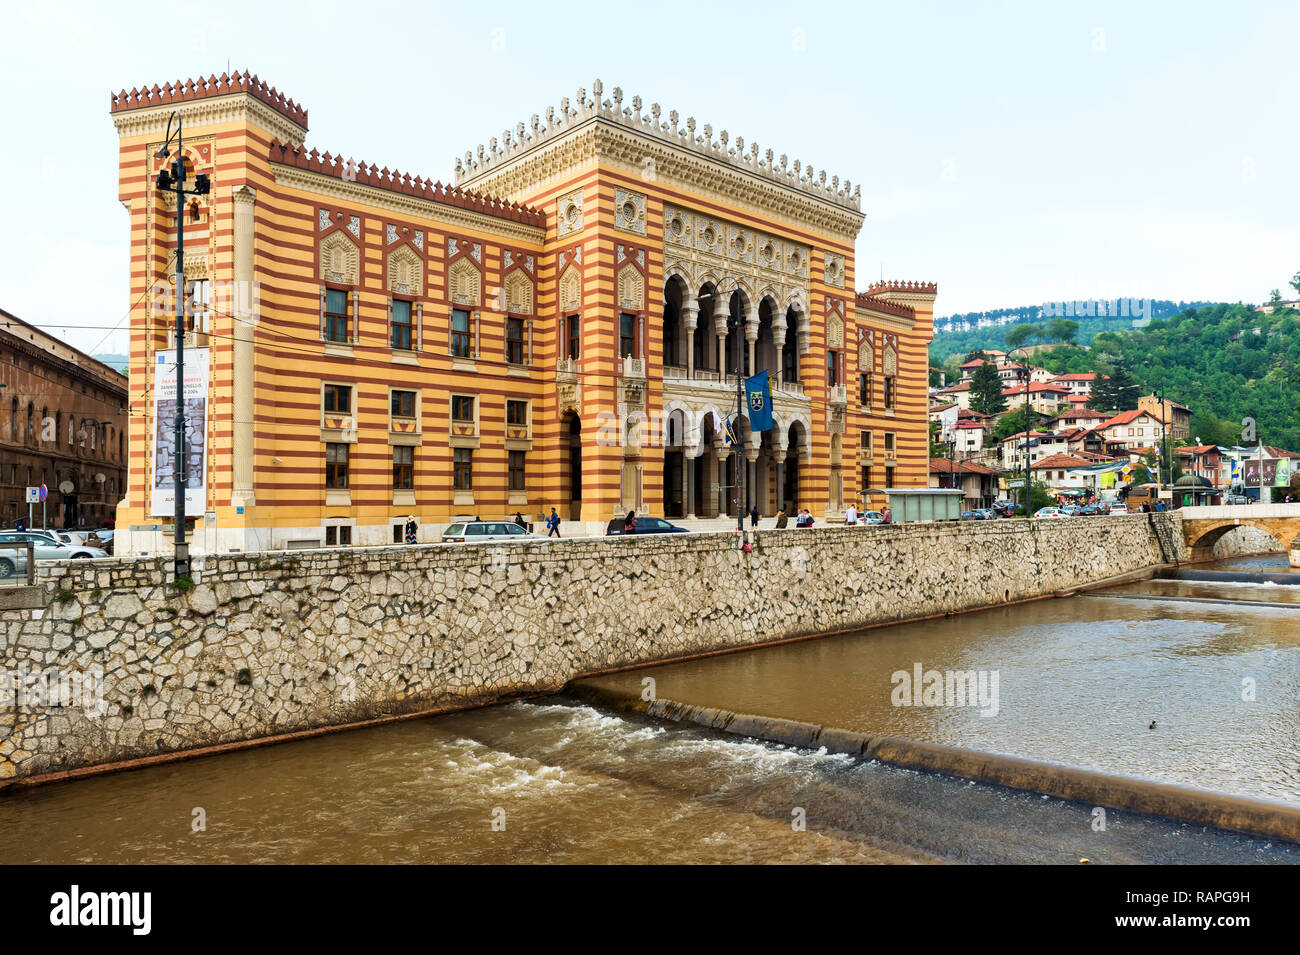 Vijecnica or City Hall, Former National University Library, Sarajevo old town, Bosnia and Herzegovina - Stock Image